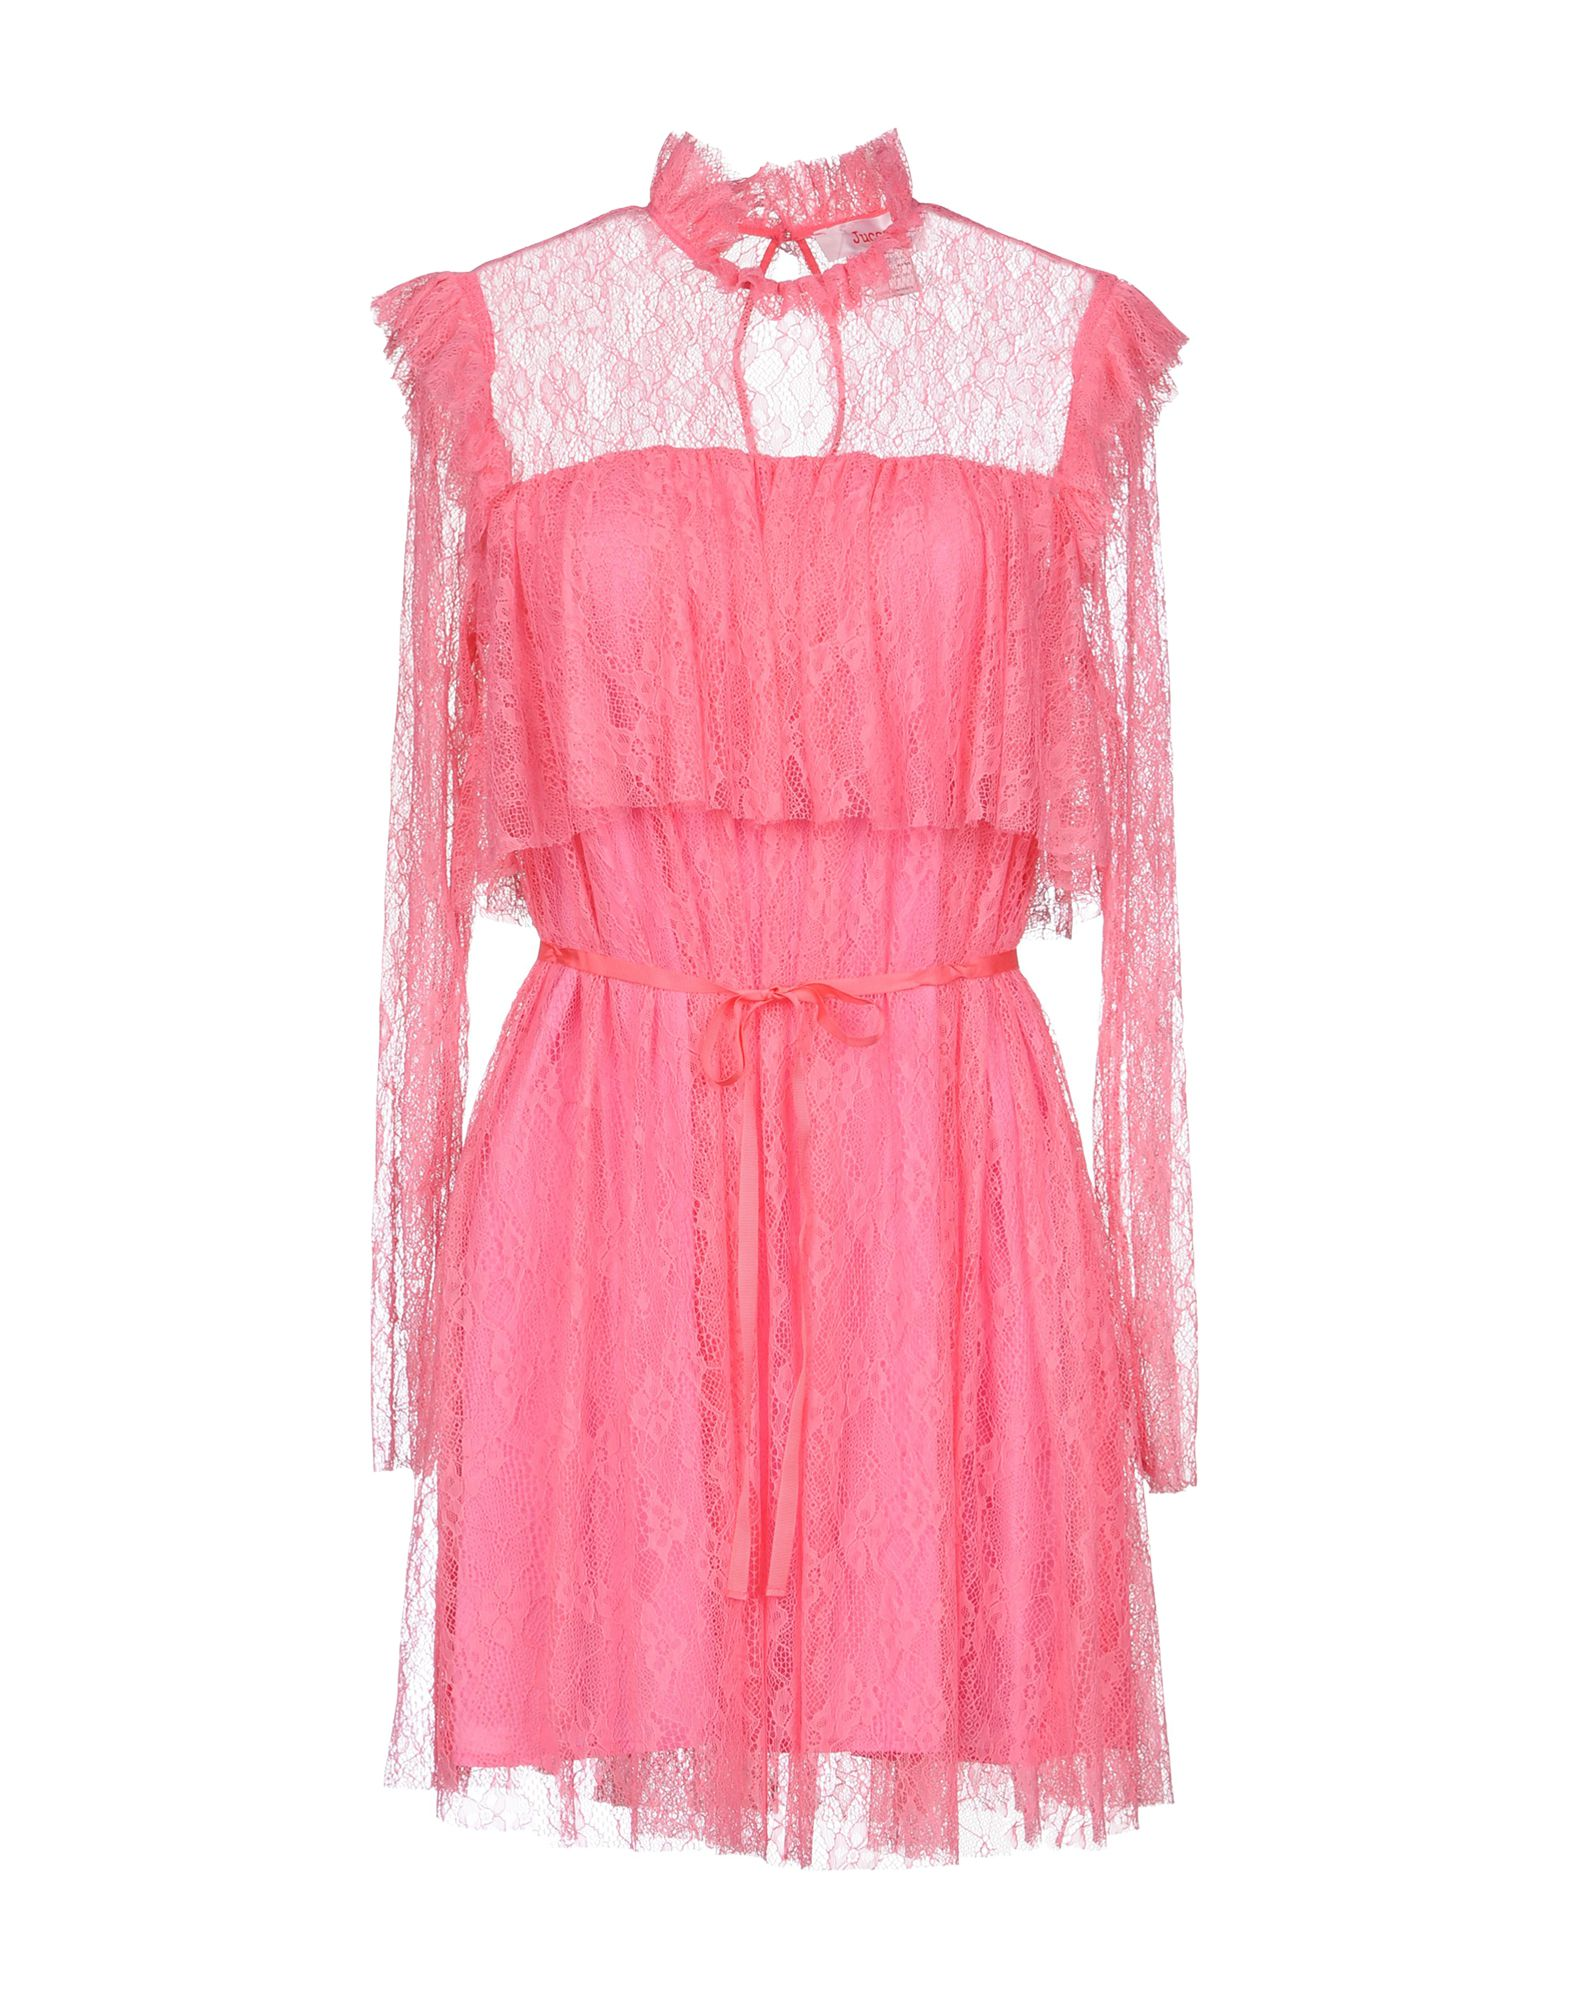 JUCCA Short Dress in Pink